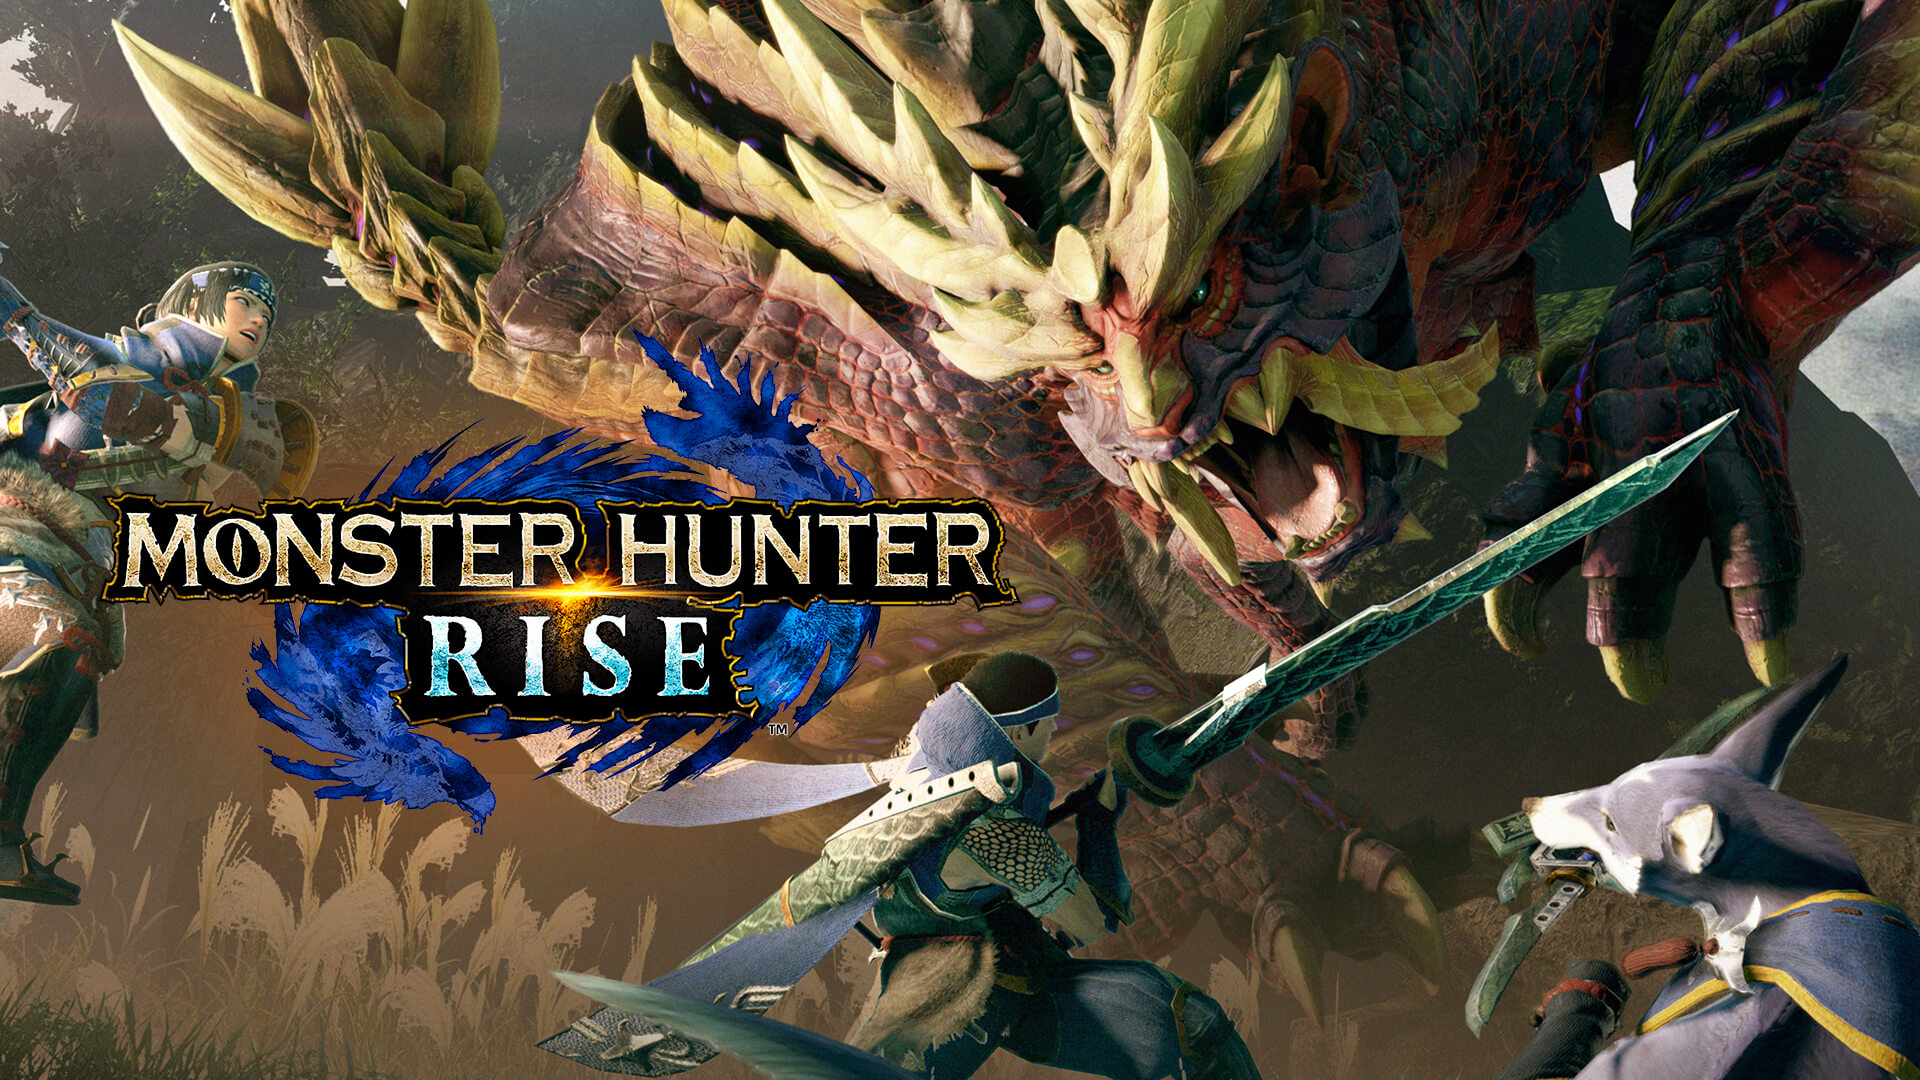 Moster Hunter Rise